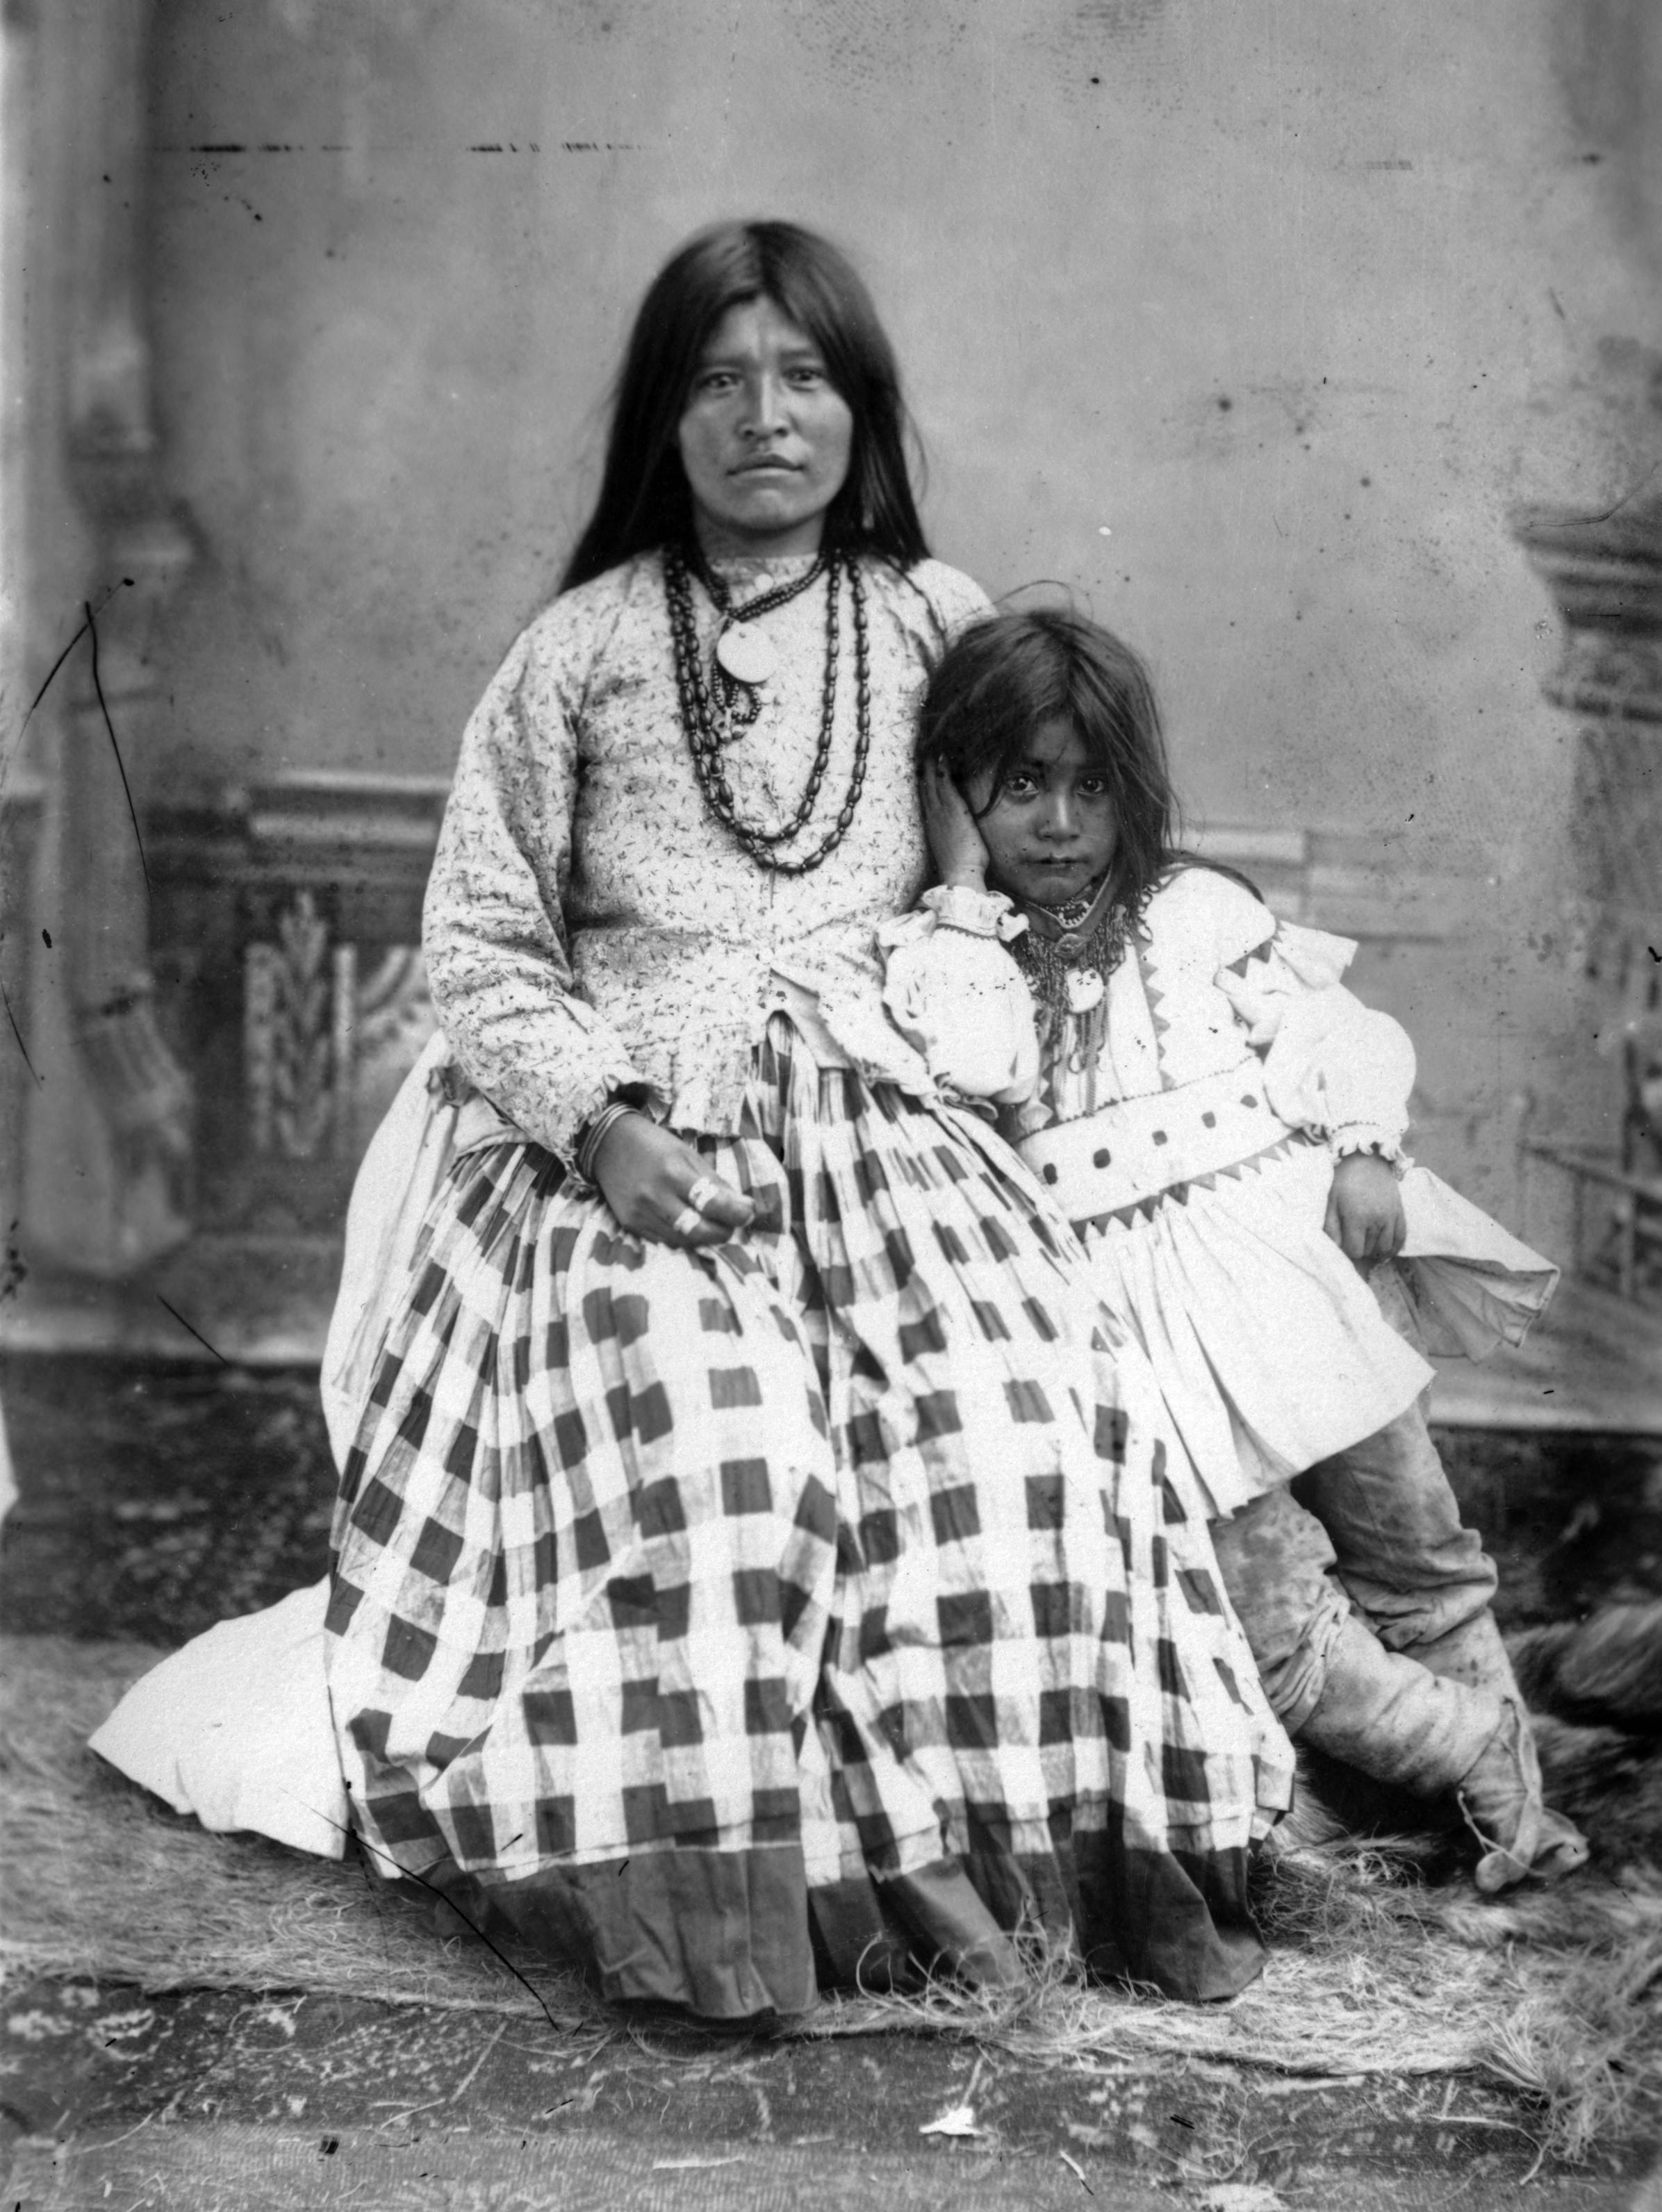 File:Ta-ayz-slath, wife of Geronimo, and one child.jpg